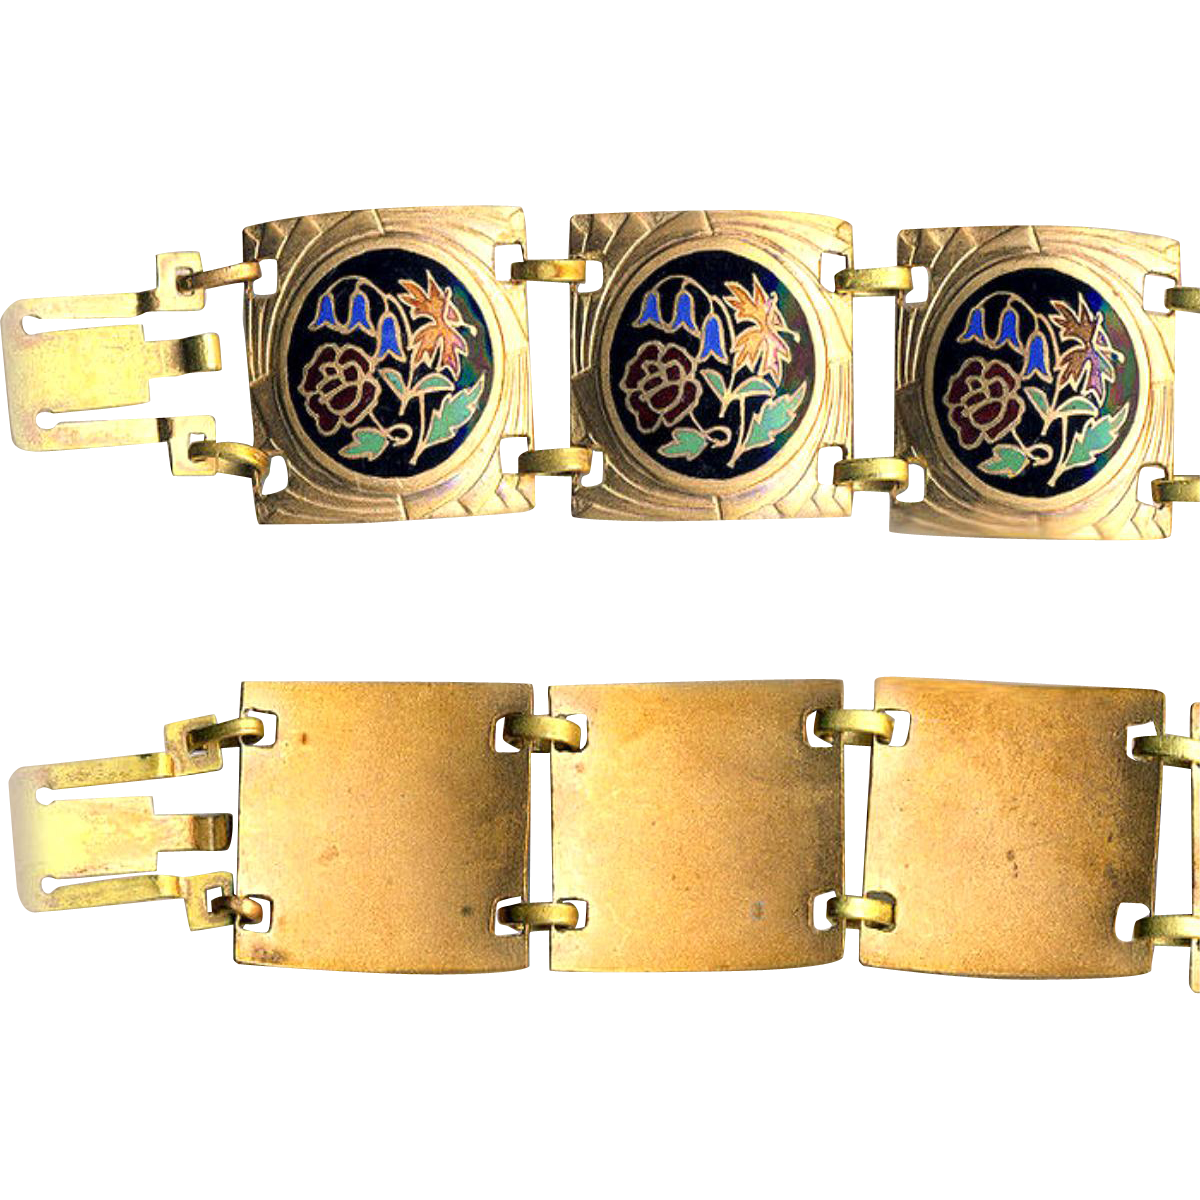 Bracelet--Large Vintage Champleve Enamel Flowers on Black in Curved Links